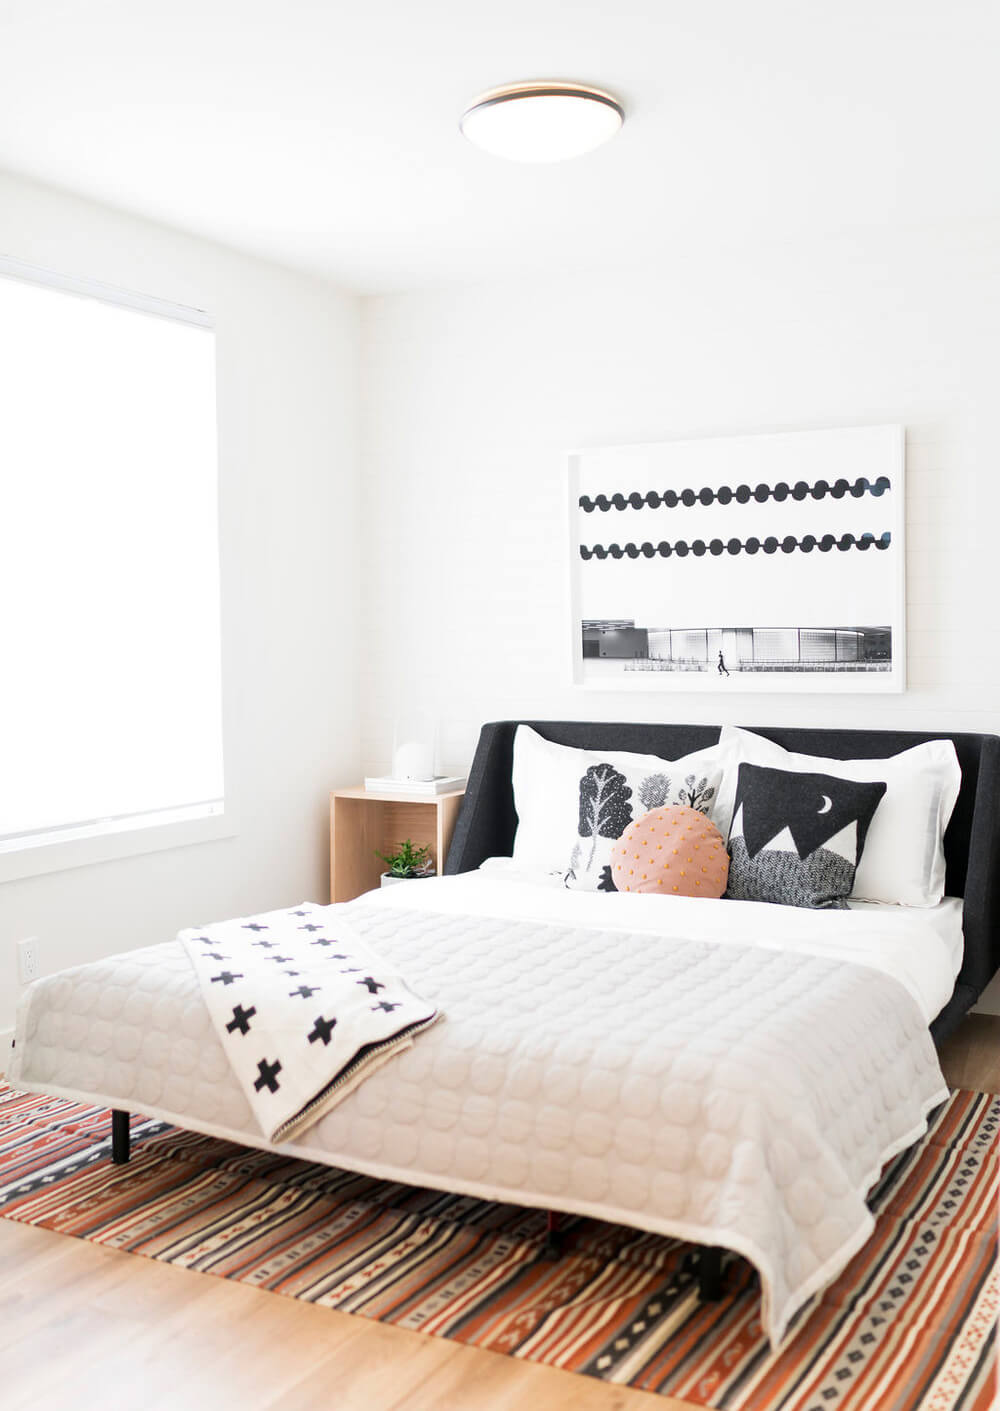 5 Trendy Bedroom Decor Ideas That Will Inspire You Transform Renovations